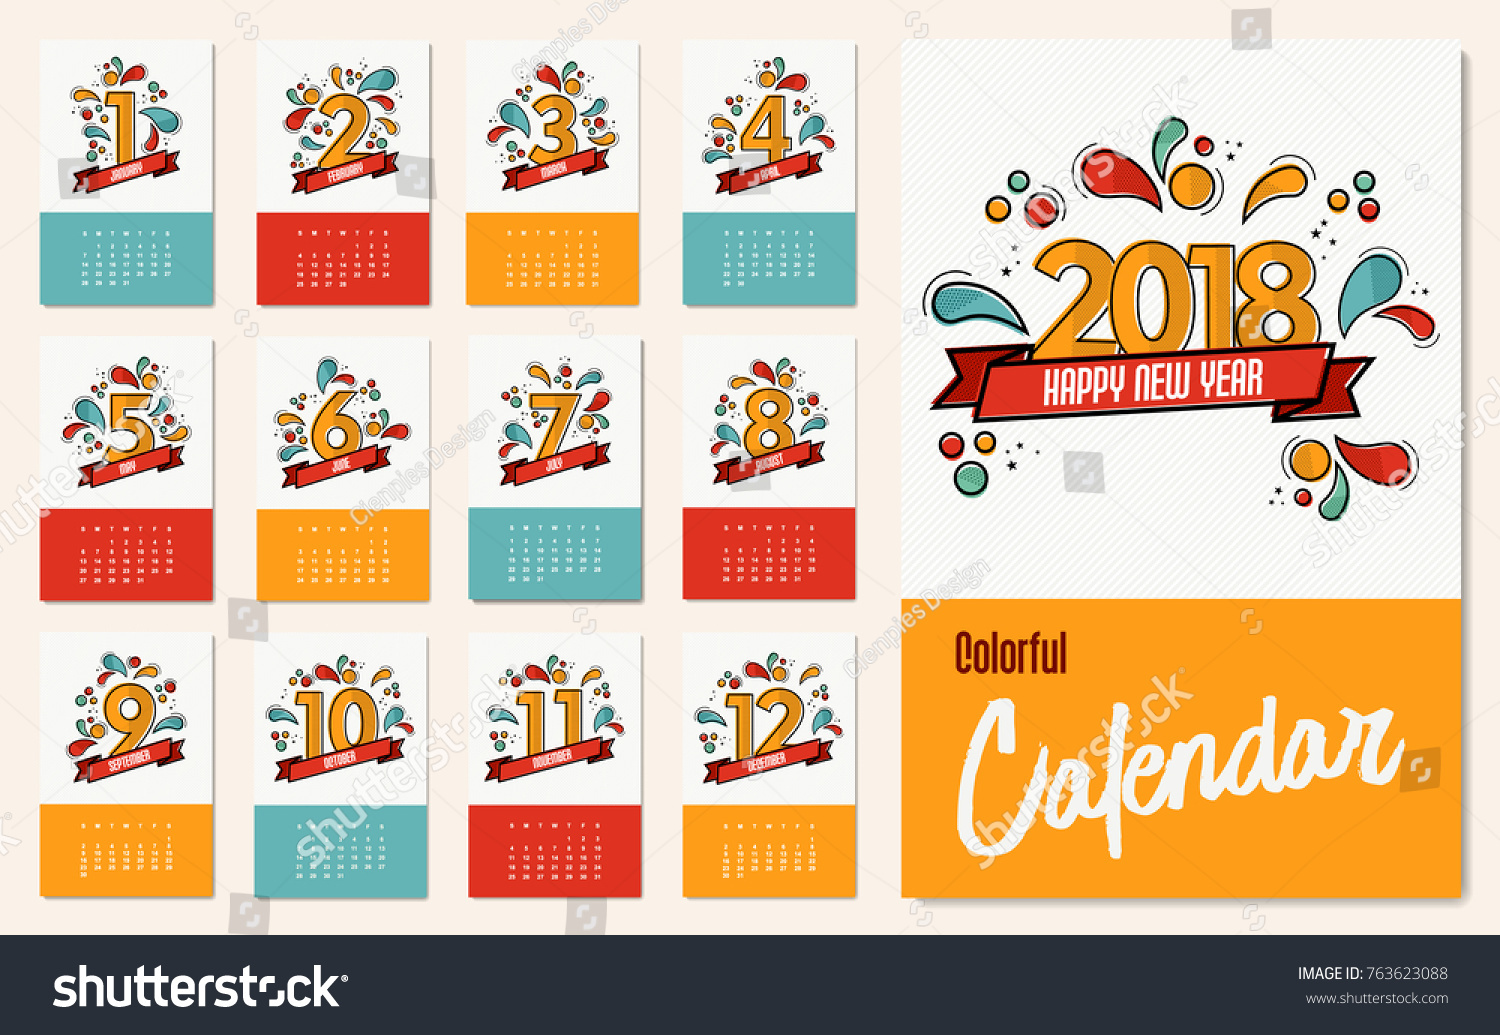 New Year 2018 Calendar Template Monthly Stock Vector Royalty Free